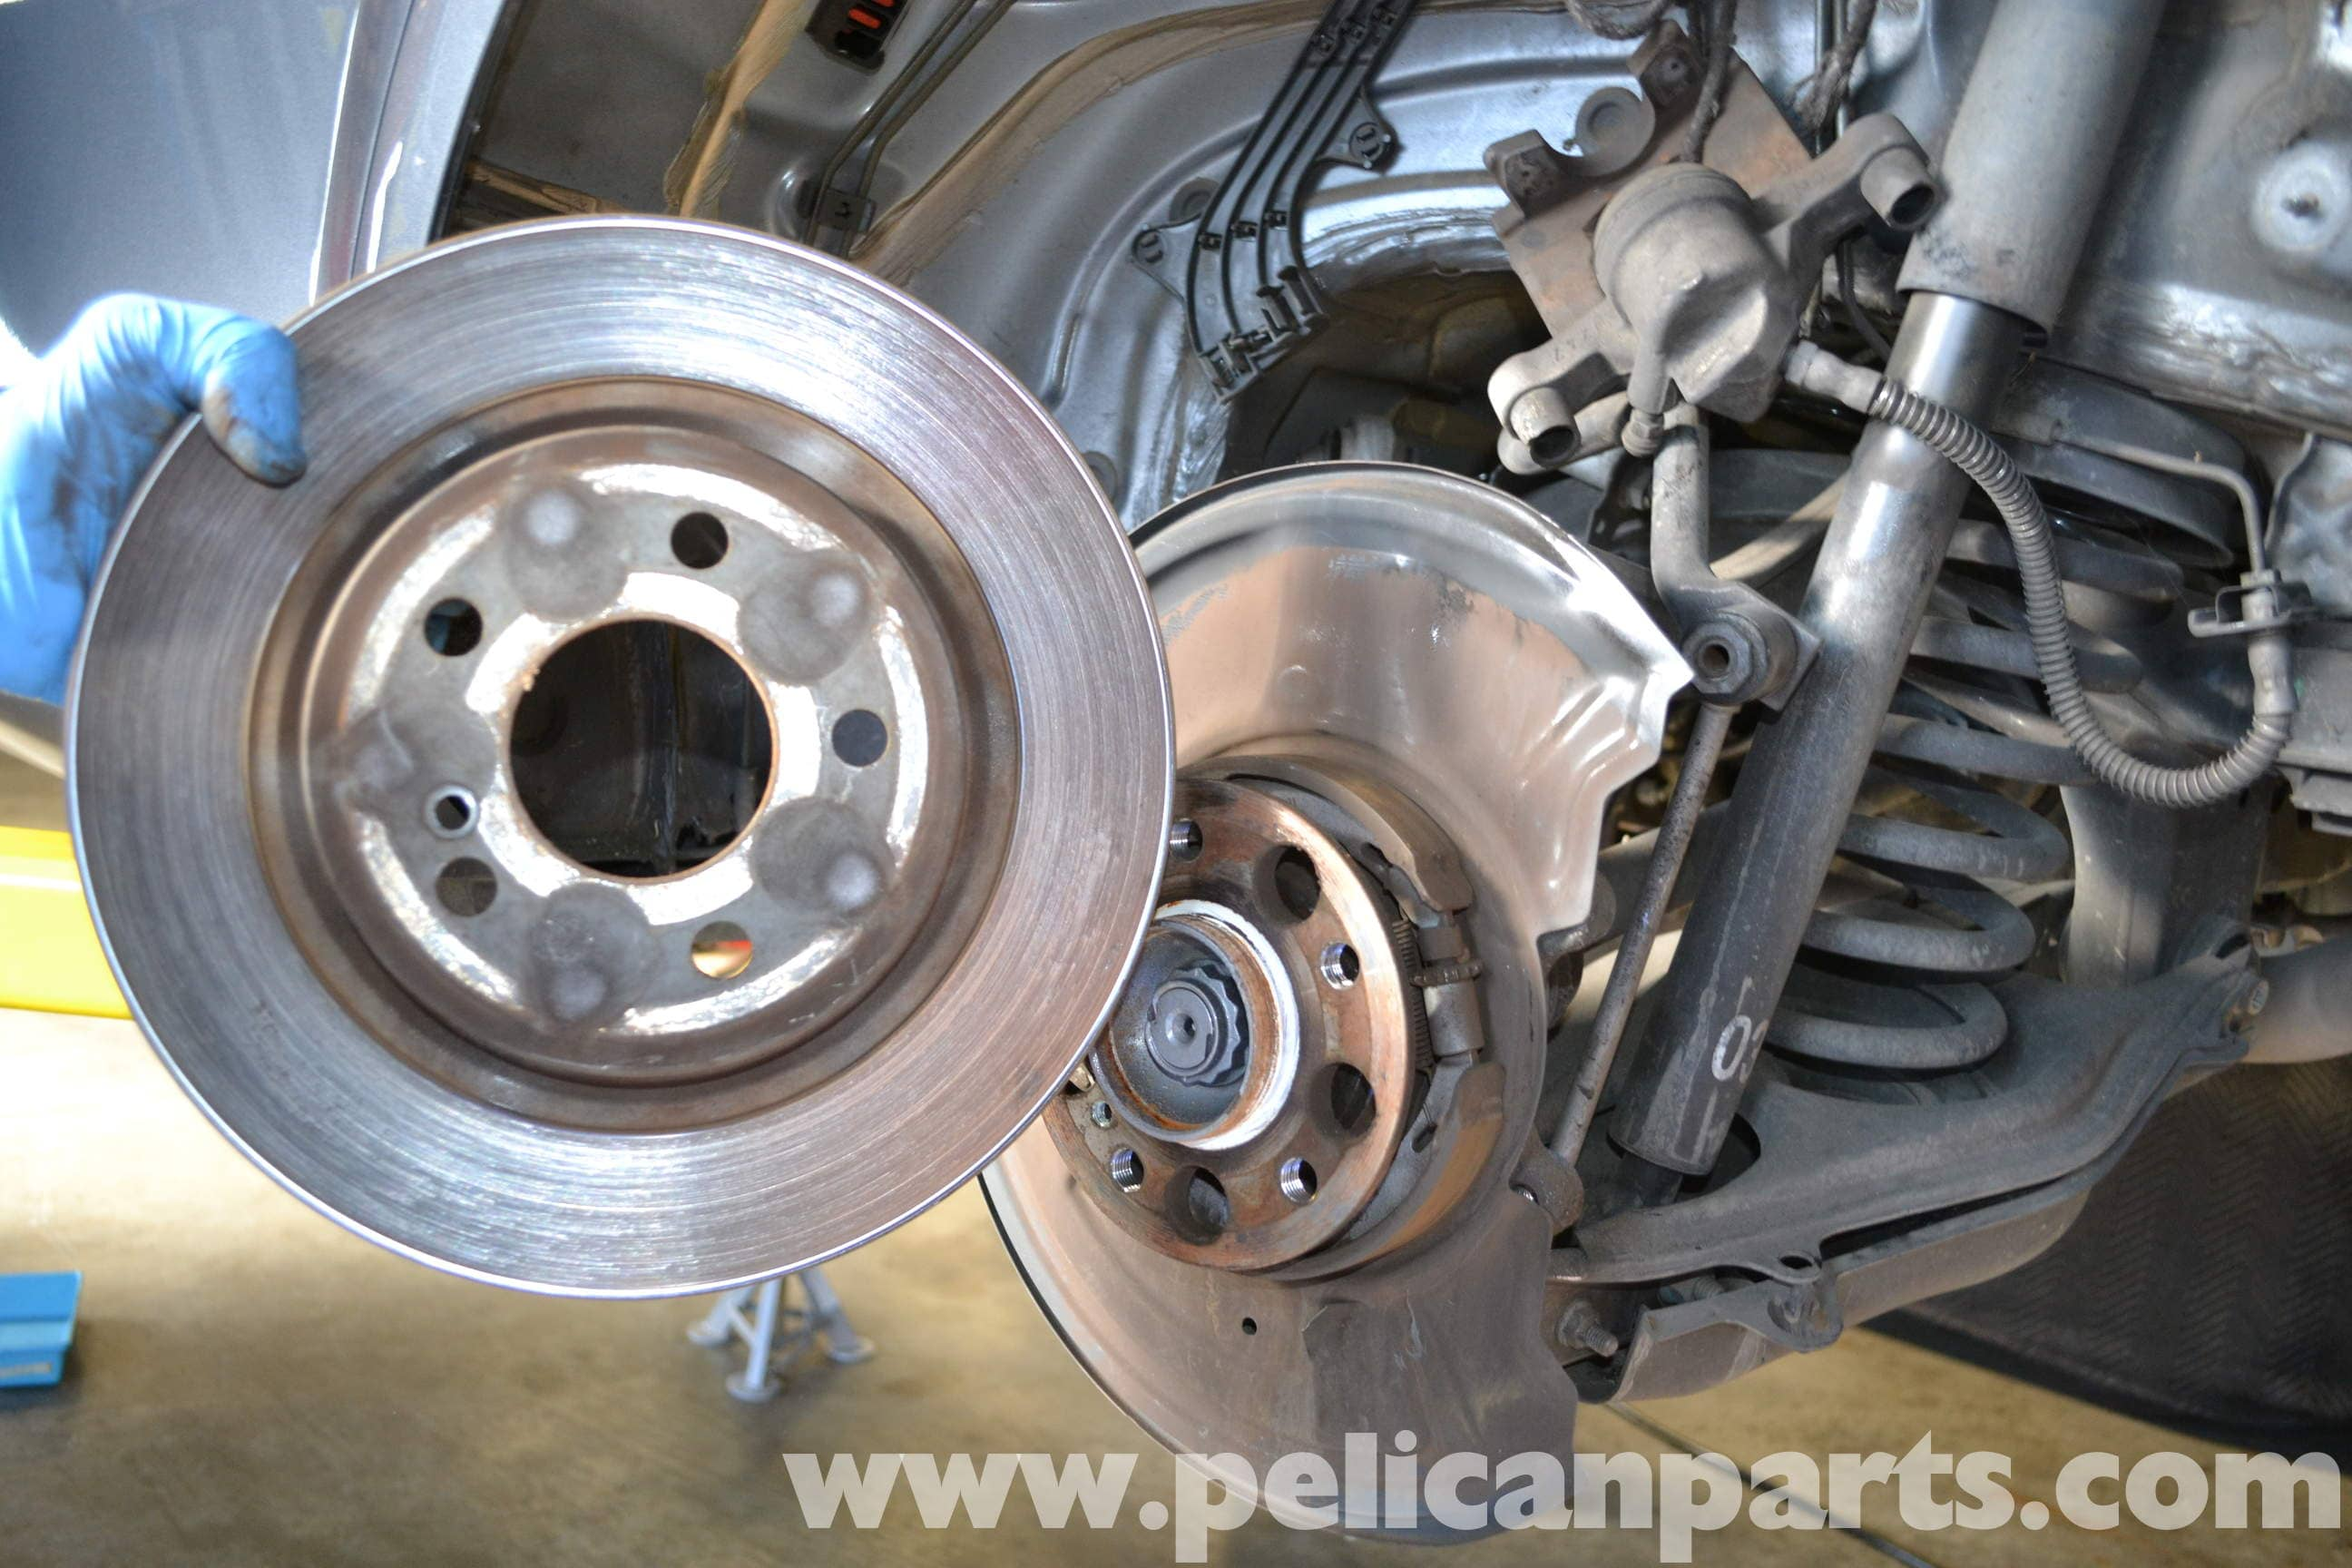 Mercedes benz w204 rear brake rotor disc replacement for Mercedes benz rotors replacement